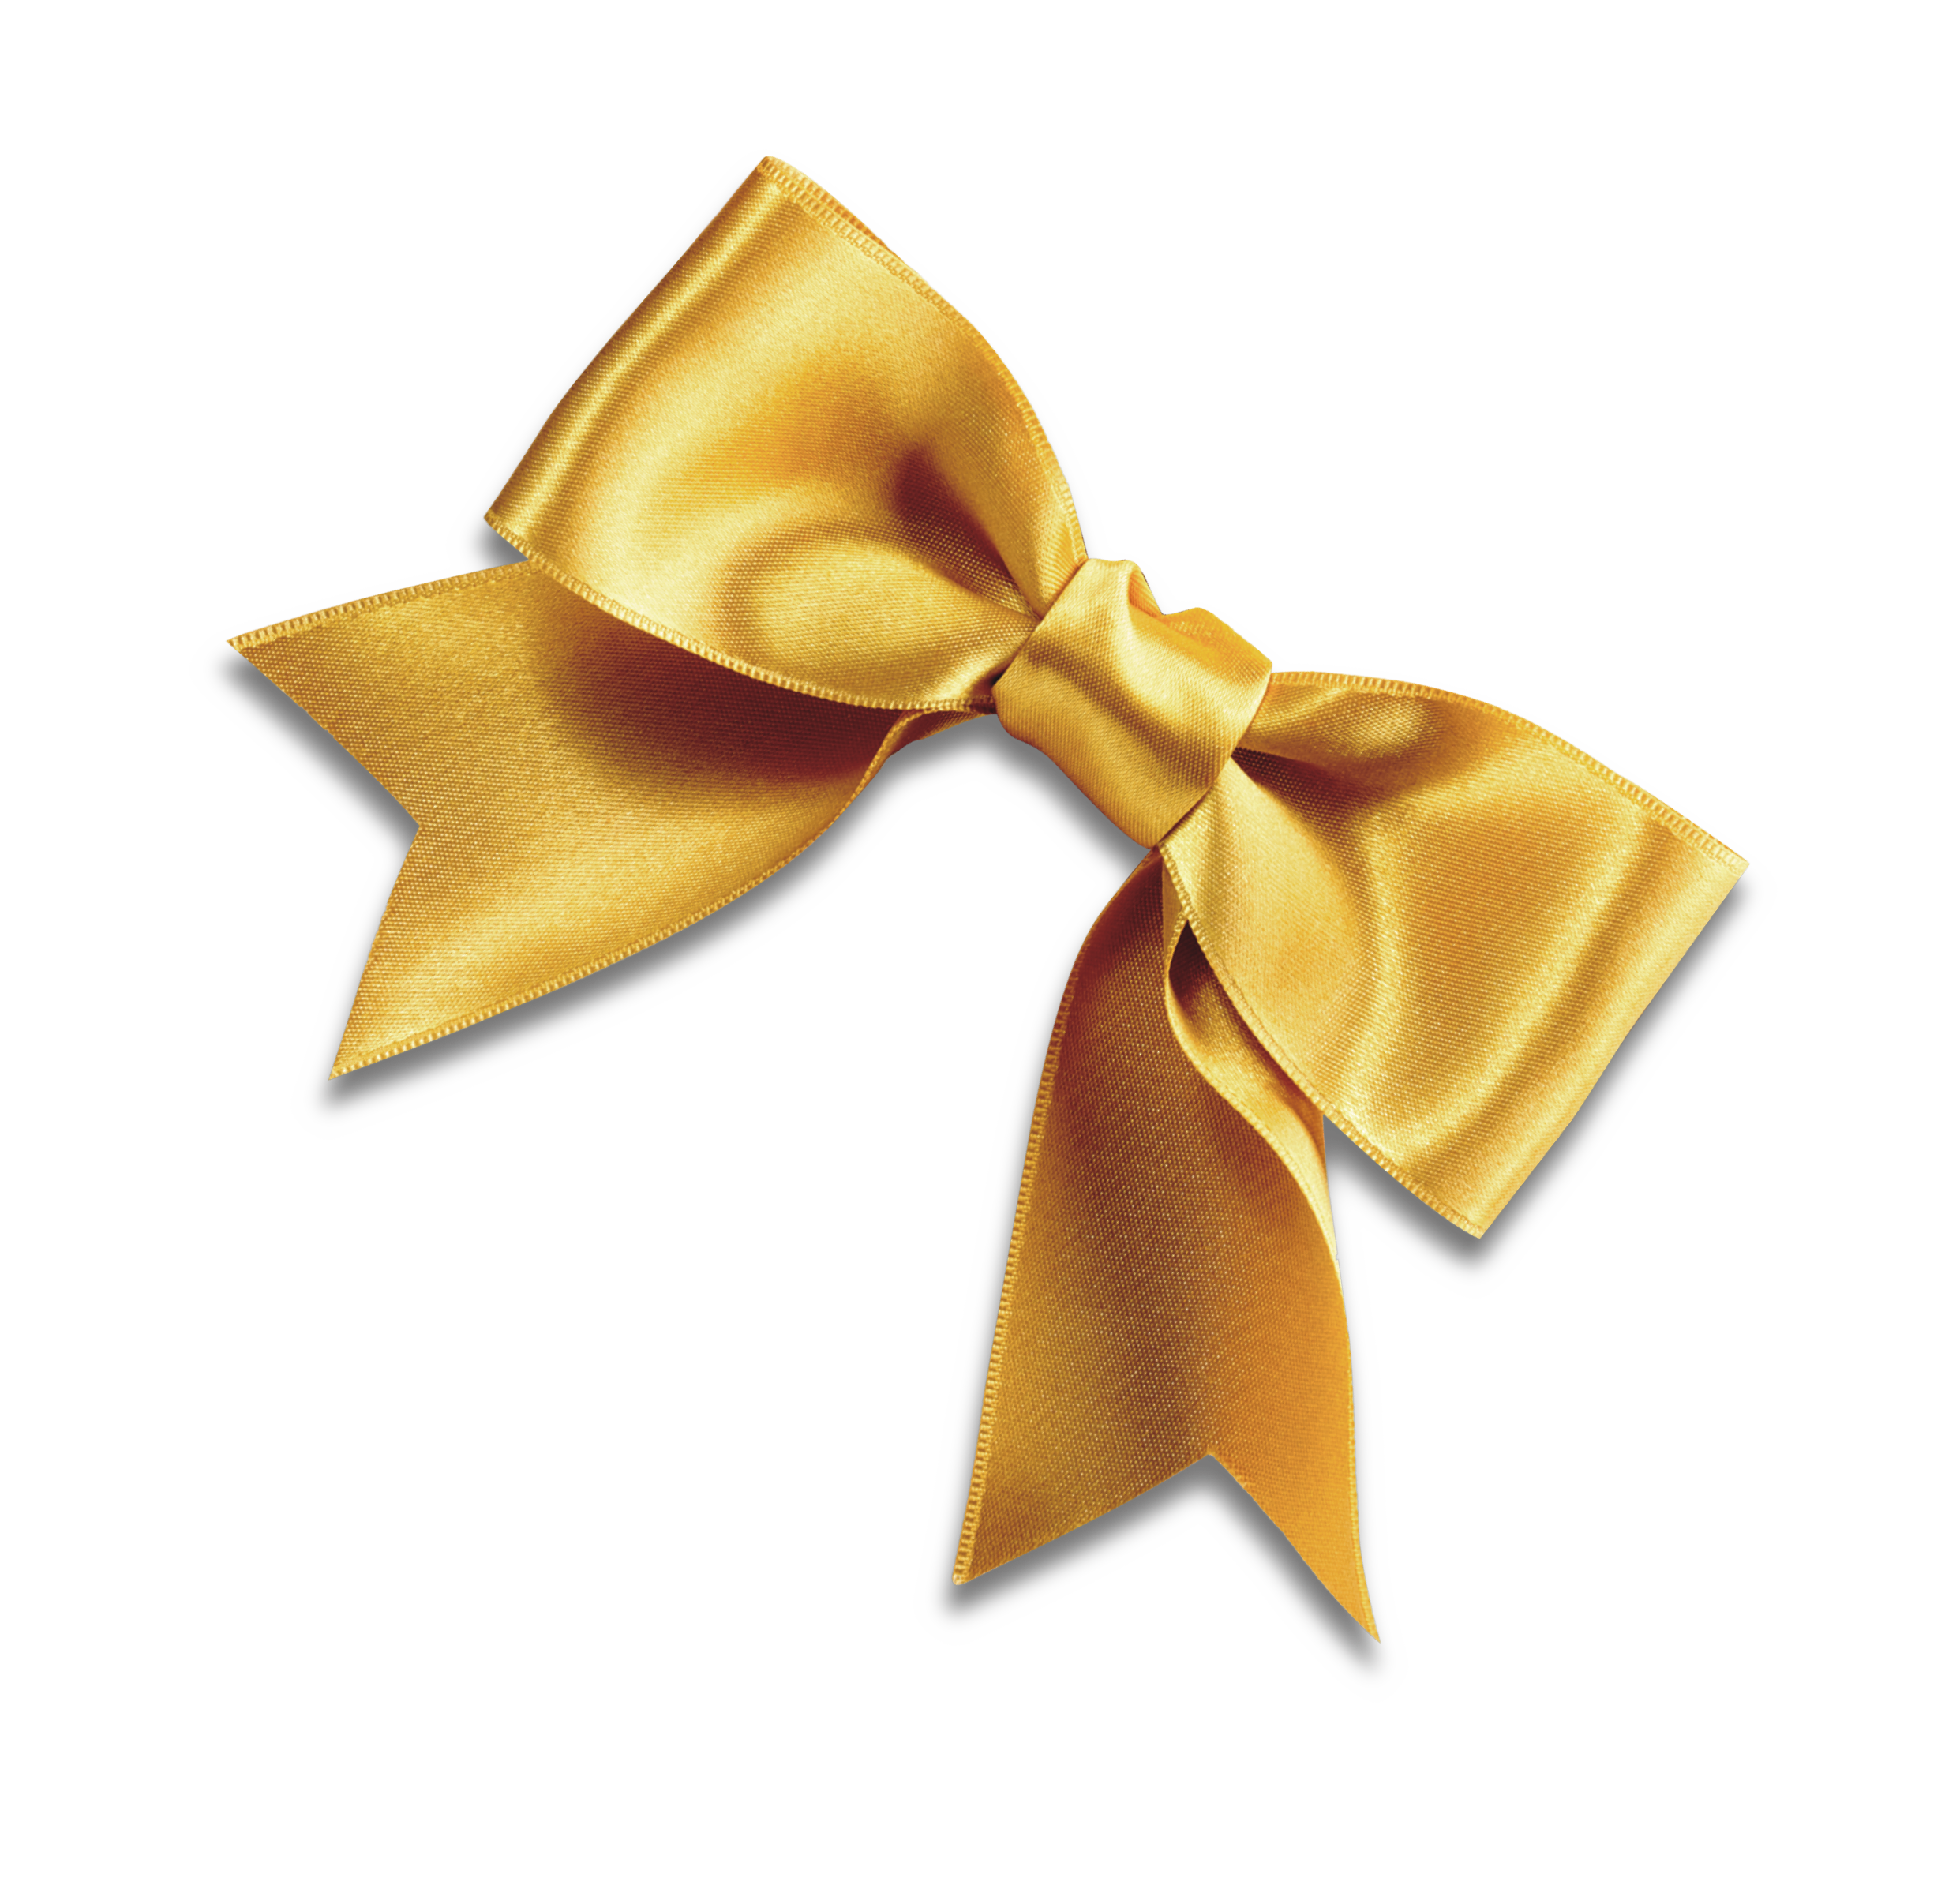 Bow tie Yellow Ribbon Shoelace knot.